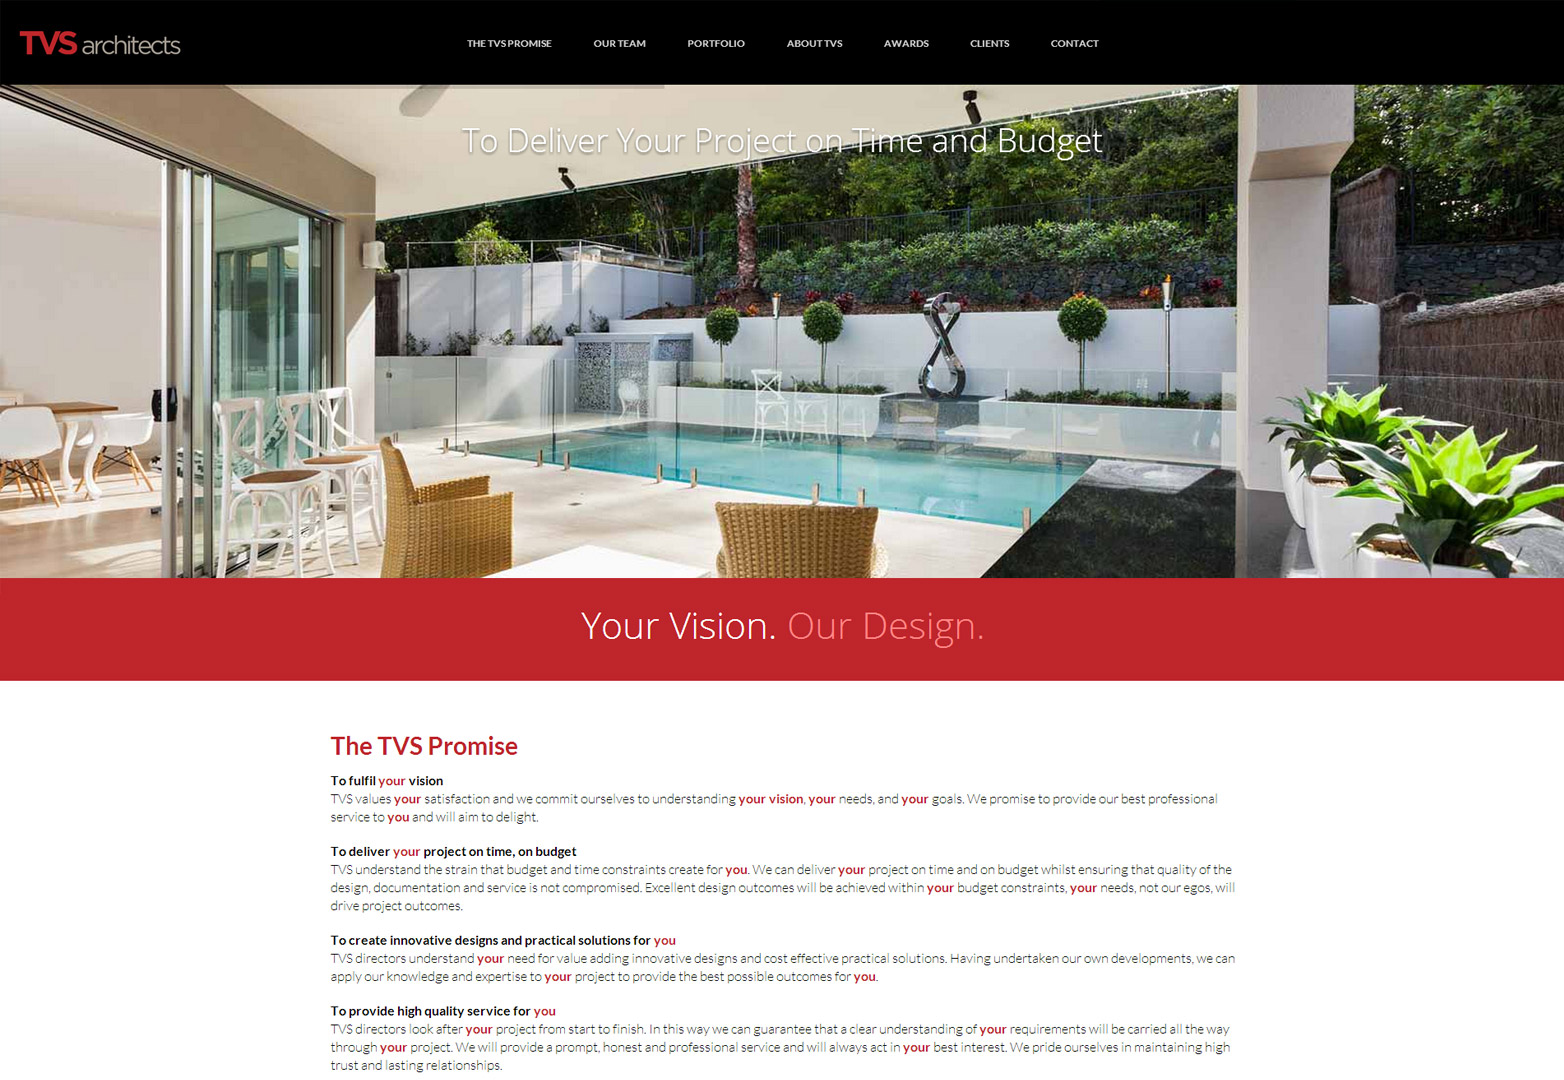 TVS Architects homepage